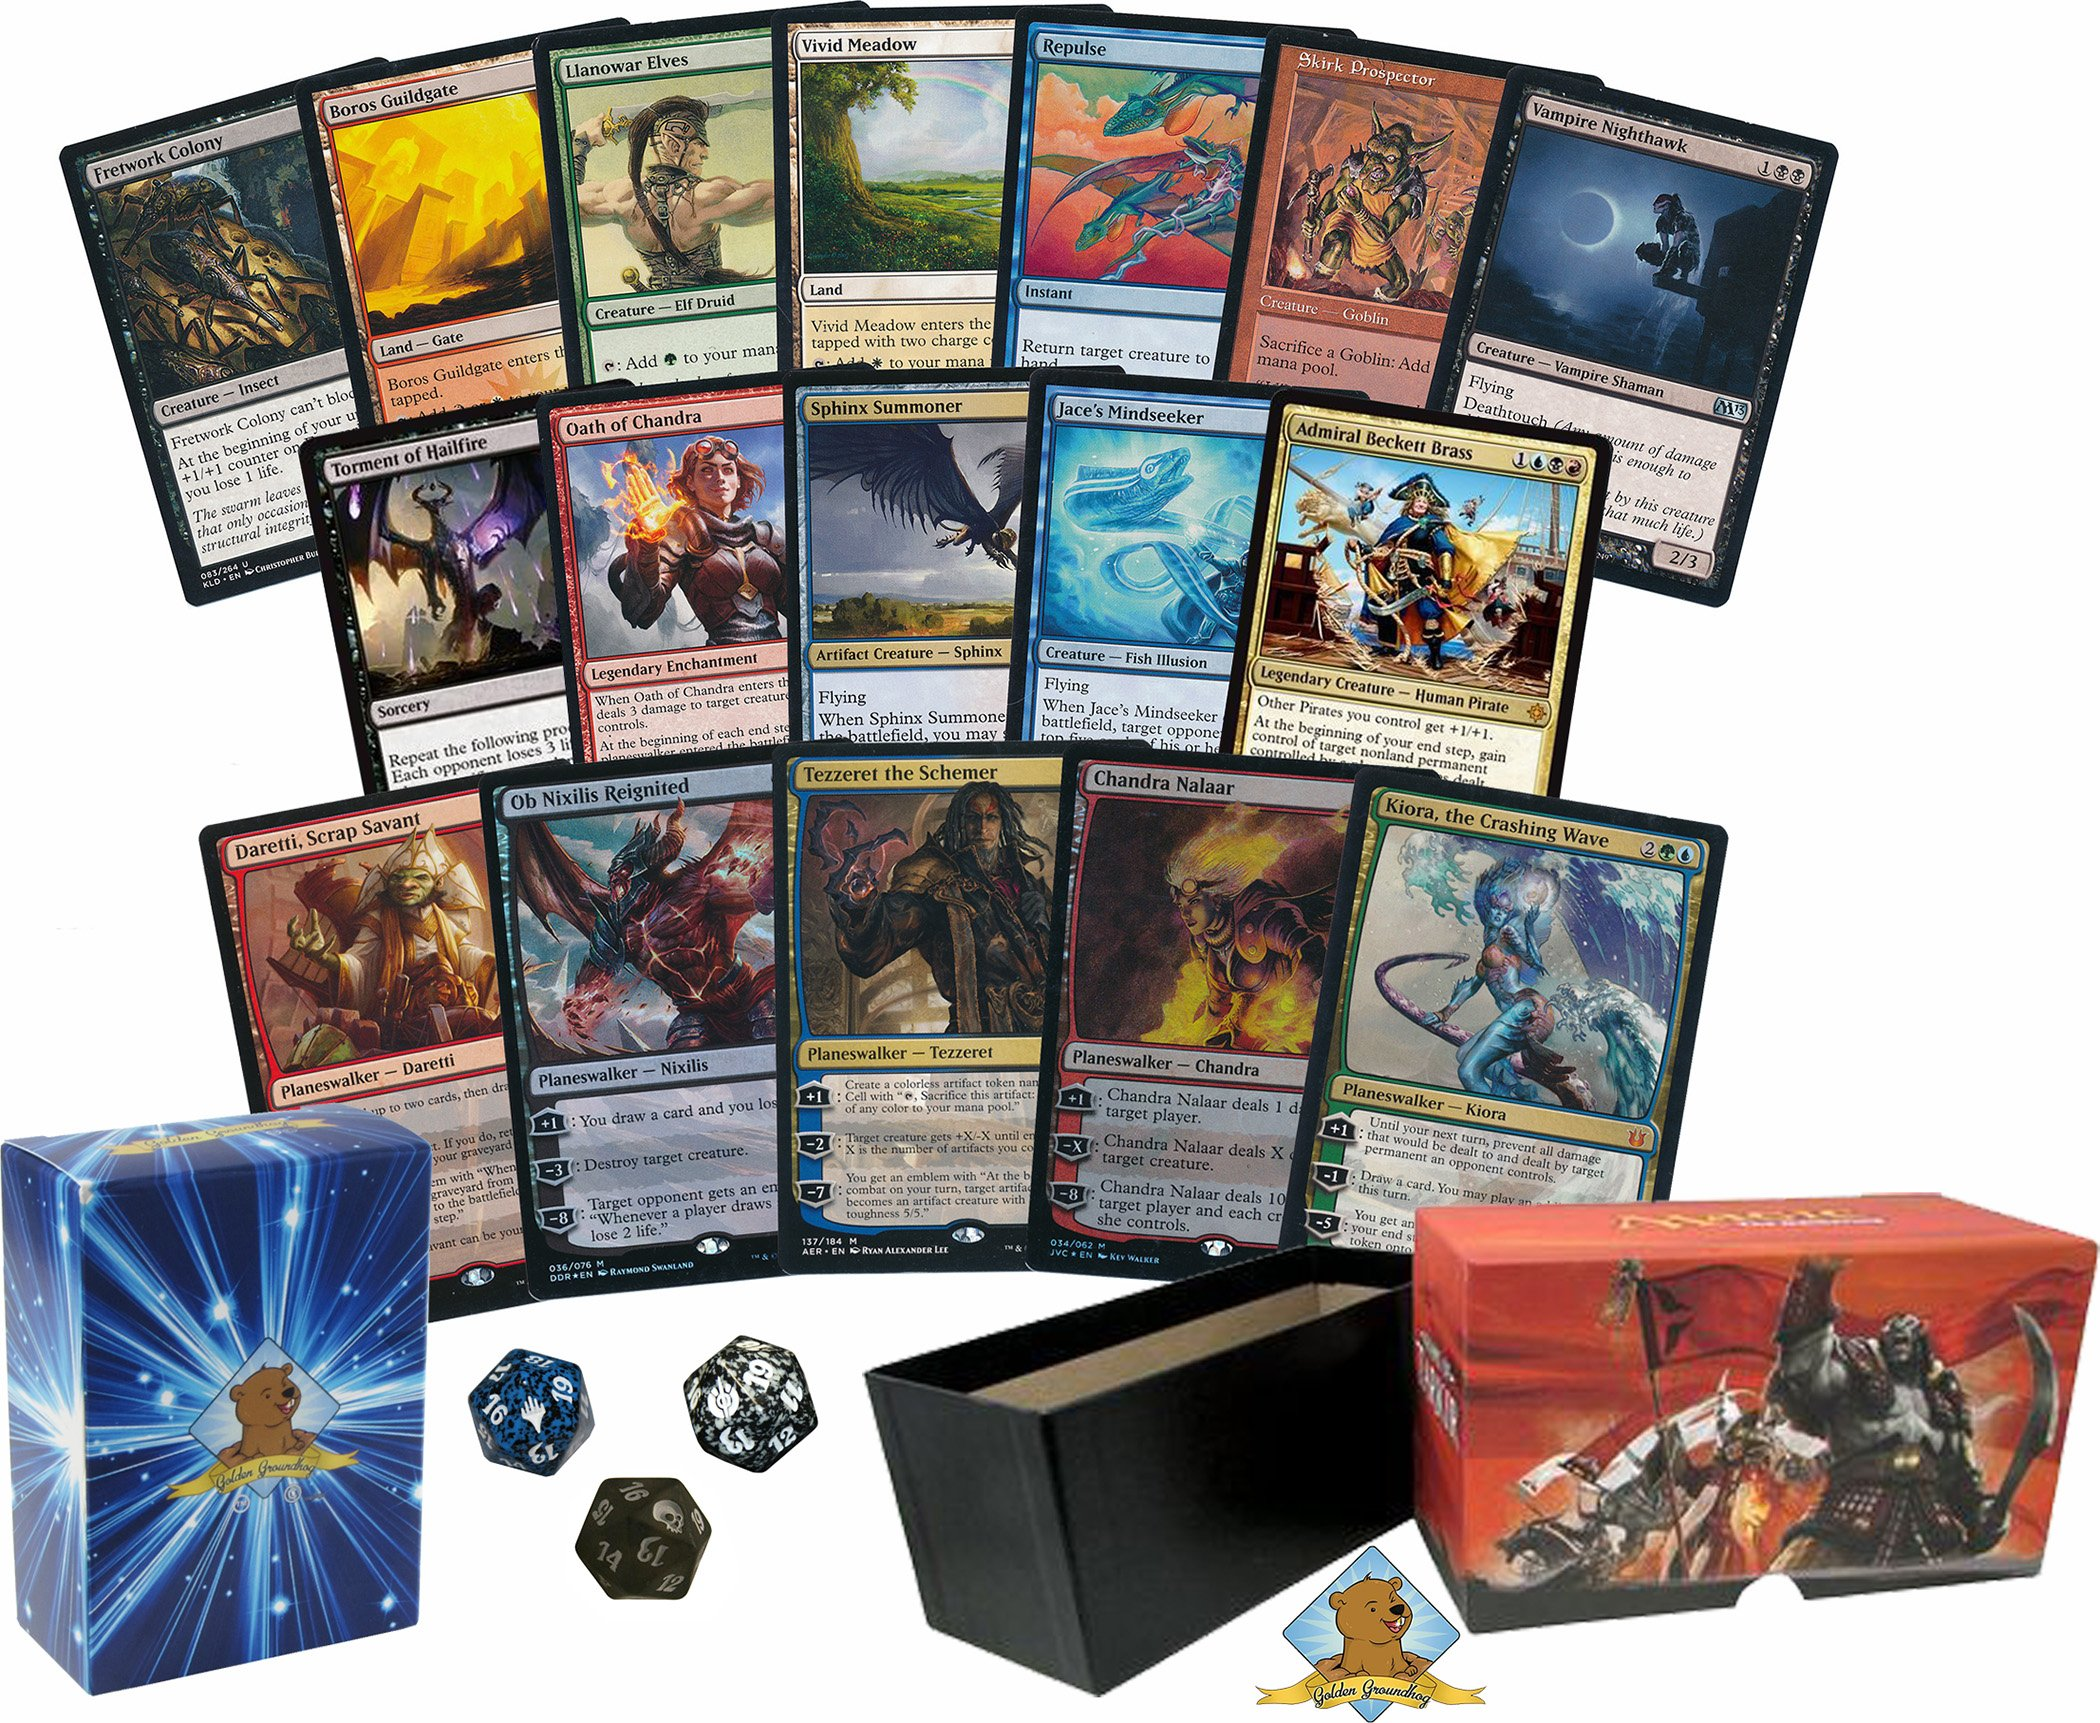 100 Magic The Gathering Cards, With a PLANESWALKER! NO DUPLICATES! Rares & Spindown in Every bundle! Comes with an 80 Pack of Lands! Empty Fat Pack Box and Golden Groundhog Deck Box Included!